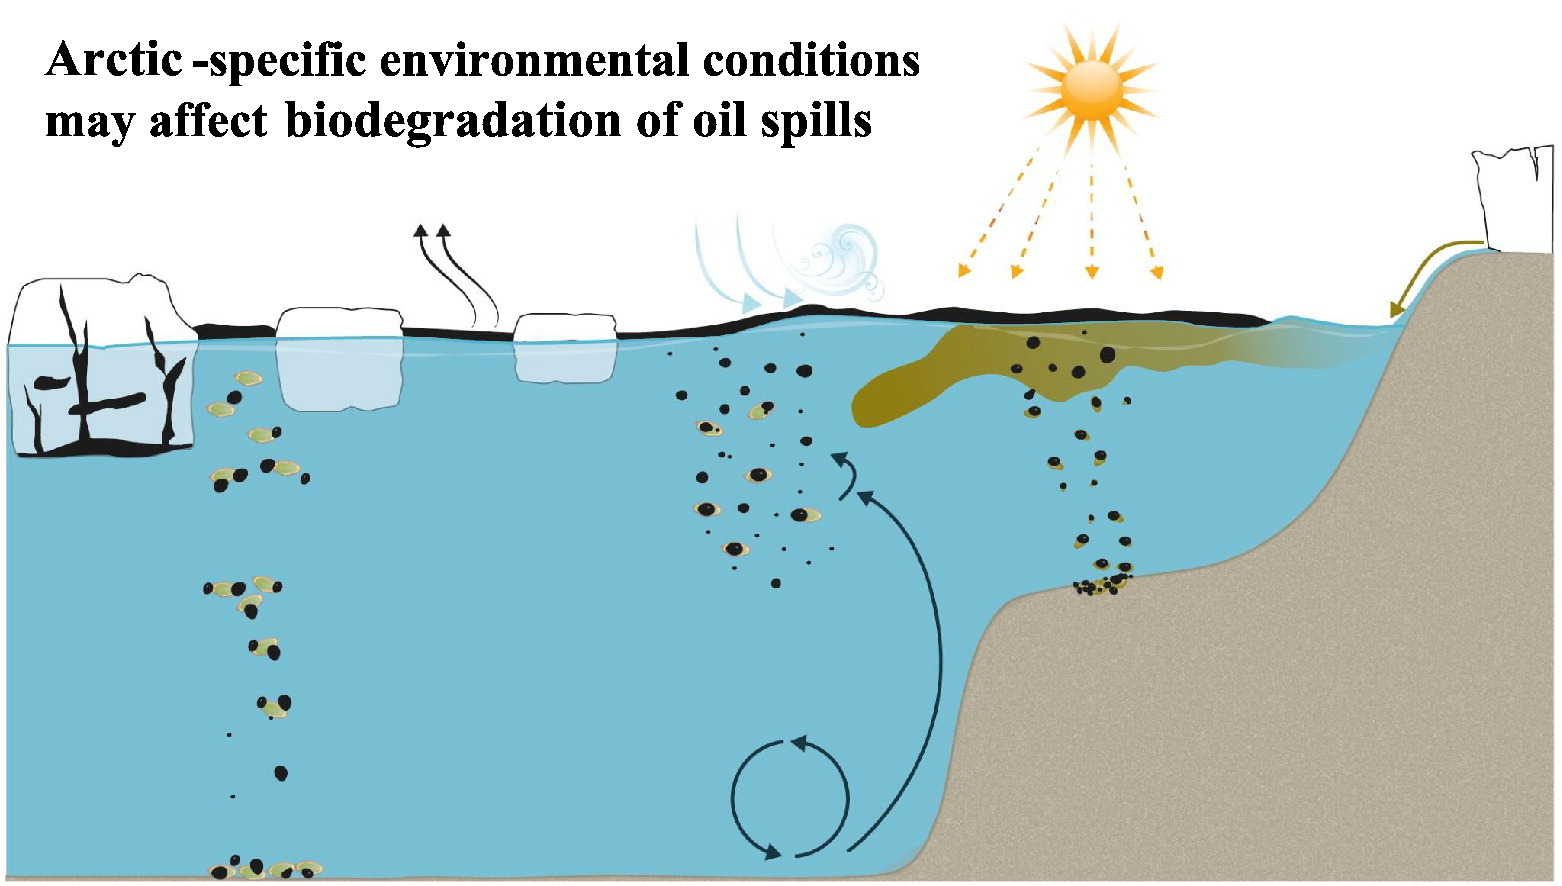 Biodegradation of oil spills in arctic specific environments (Image Source: Science of the Total Environment Journal)